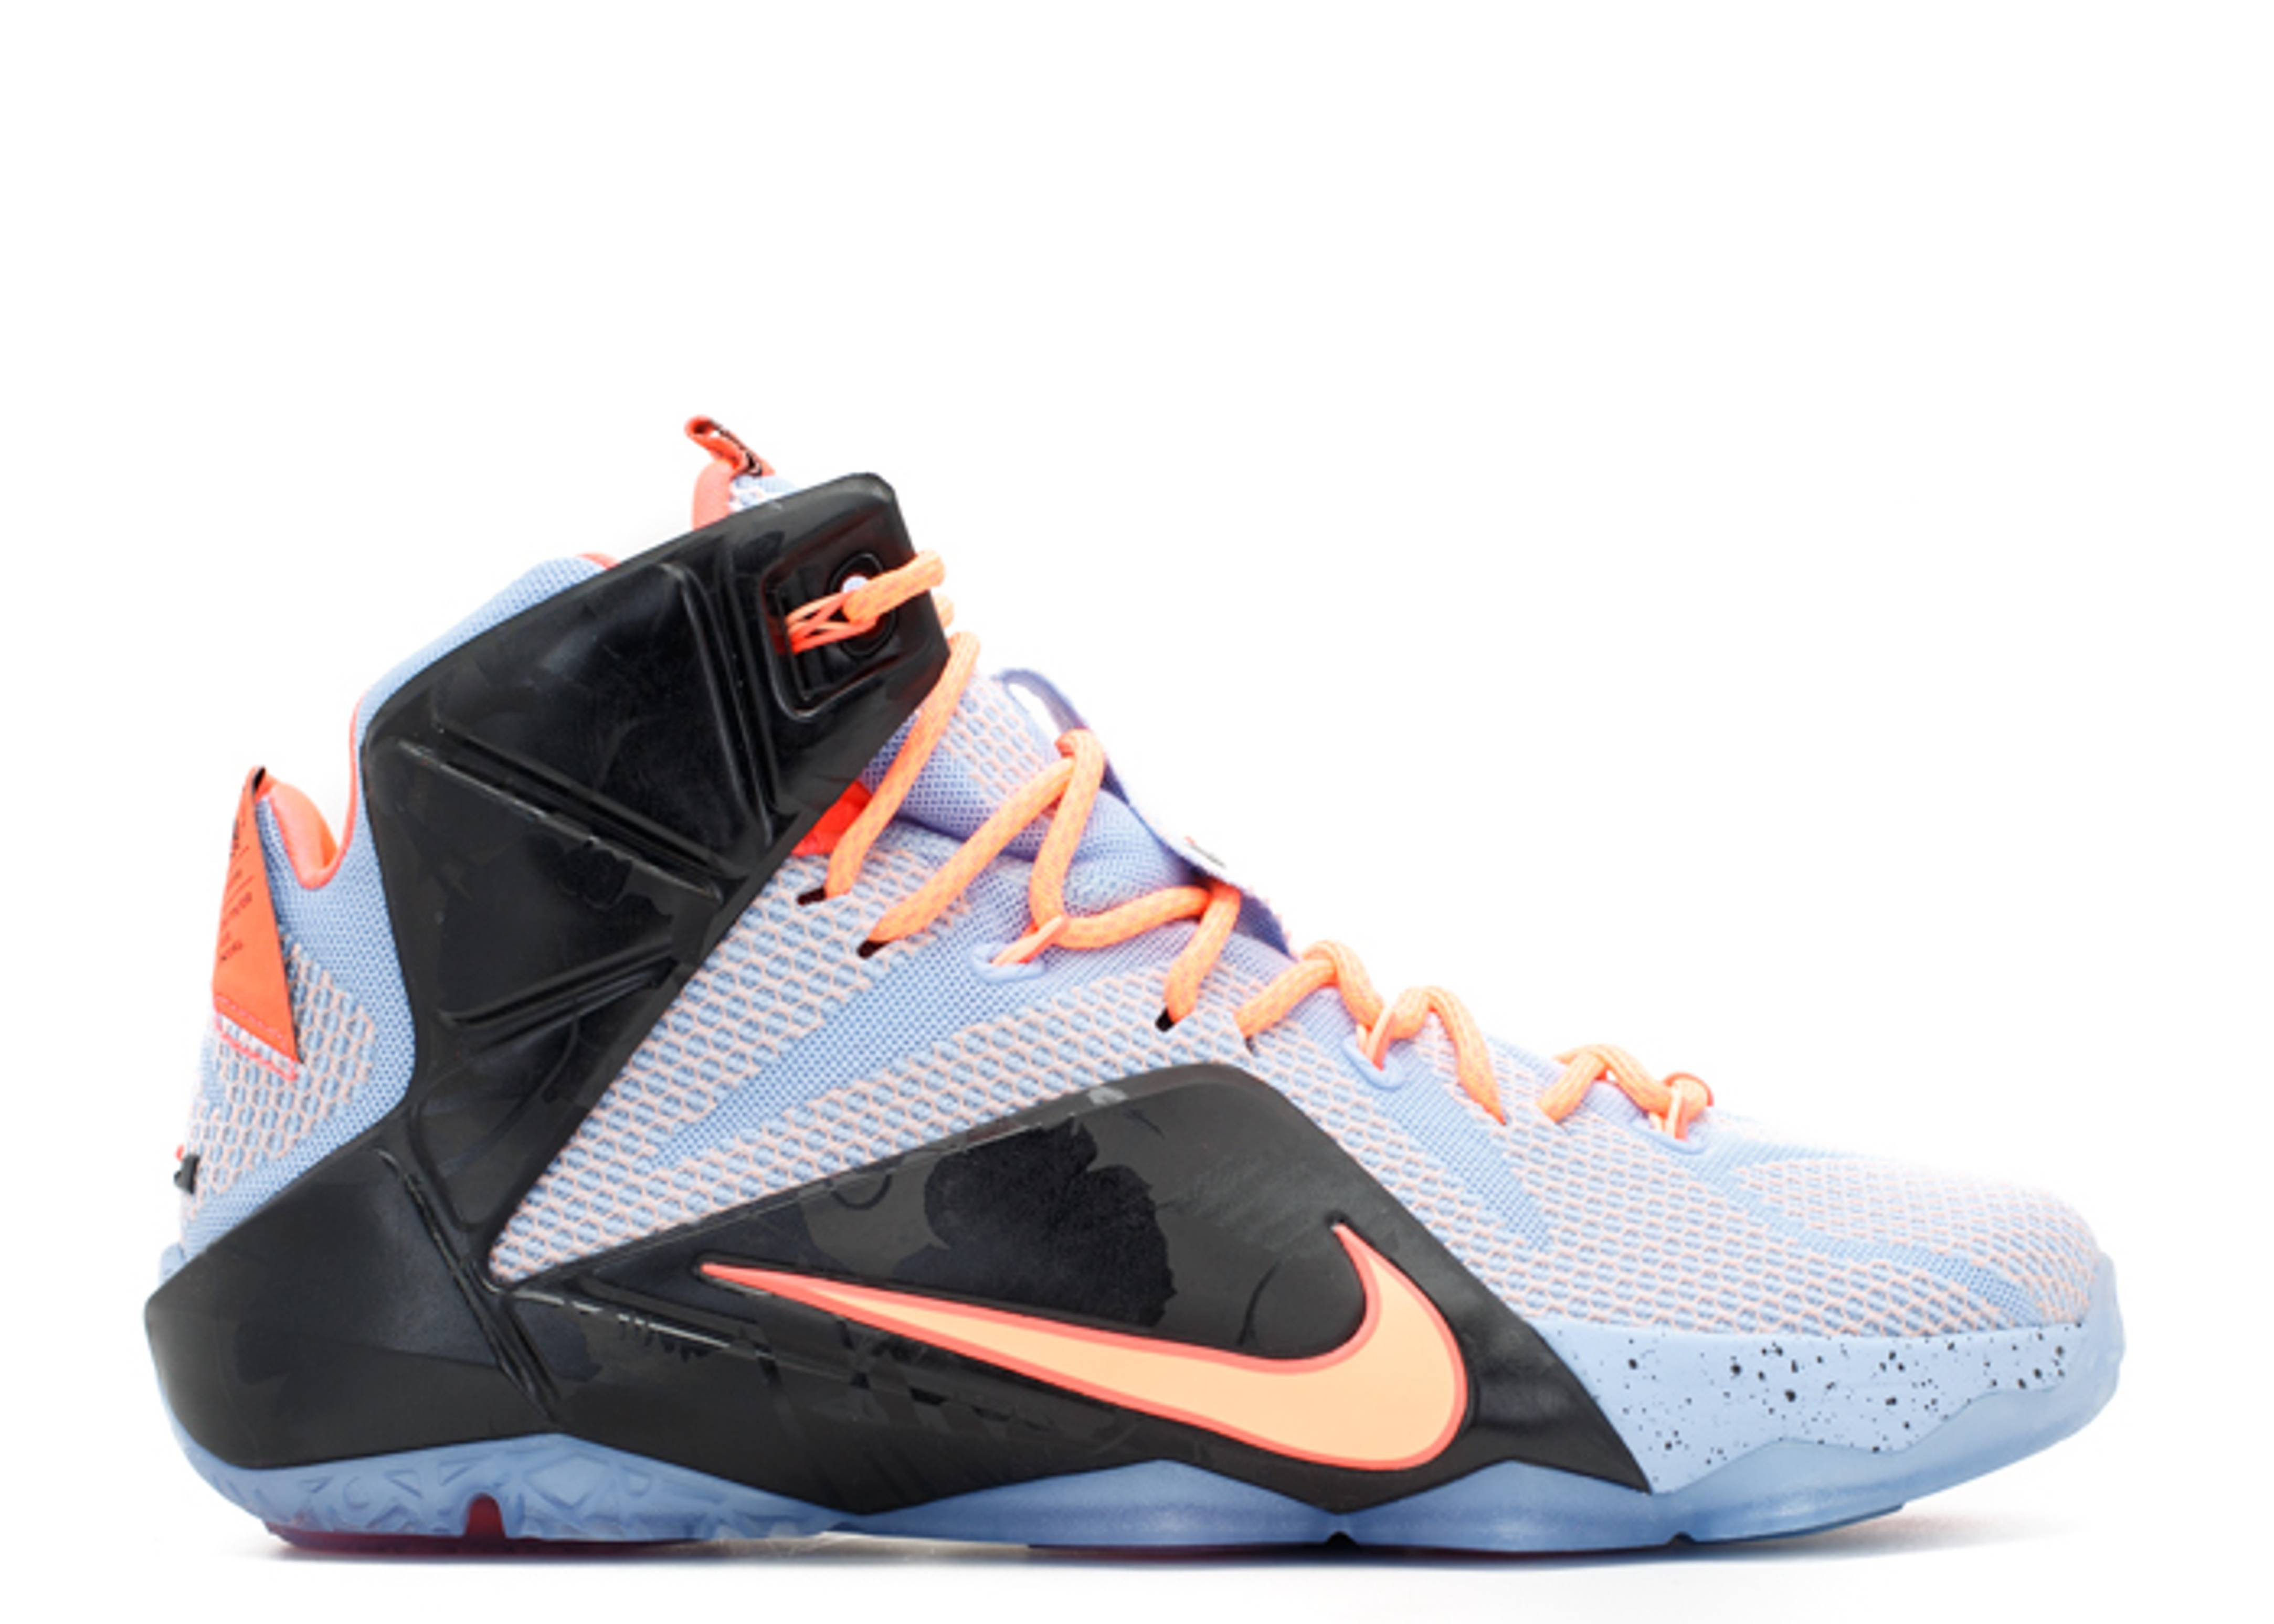 best service 5d027 a1fa1 lebron 12 easter